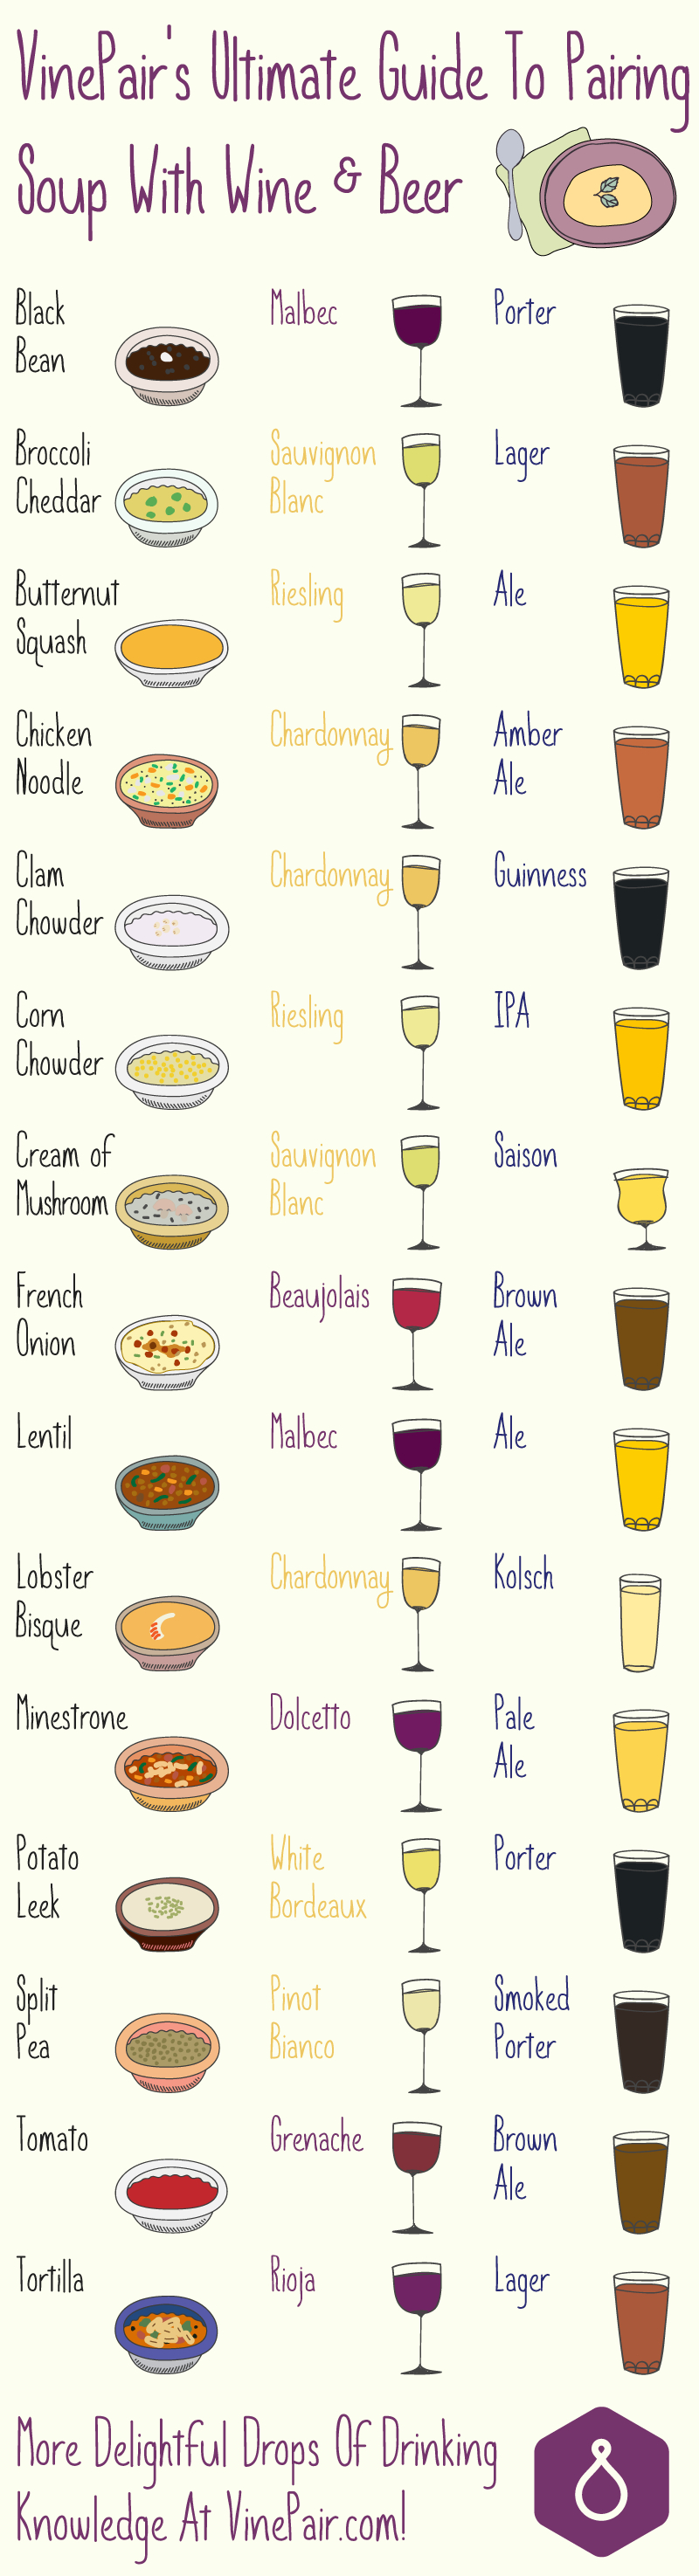 The Ultimate Guide to Pairing Soup With Wine & Beer